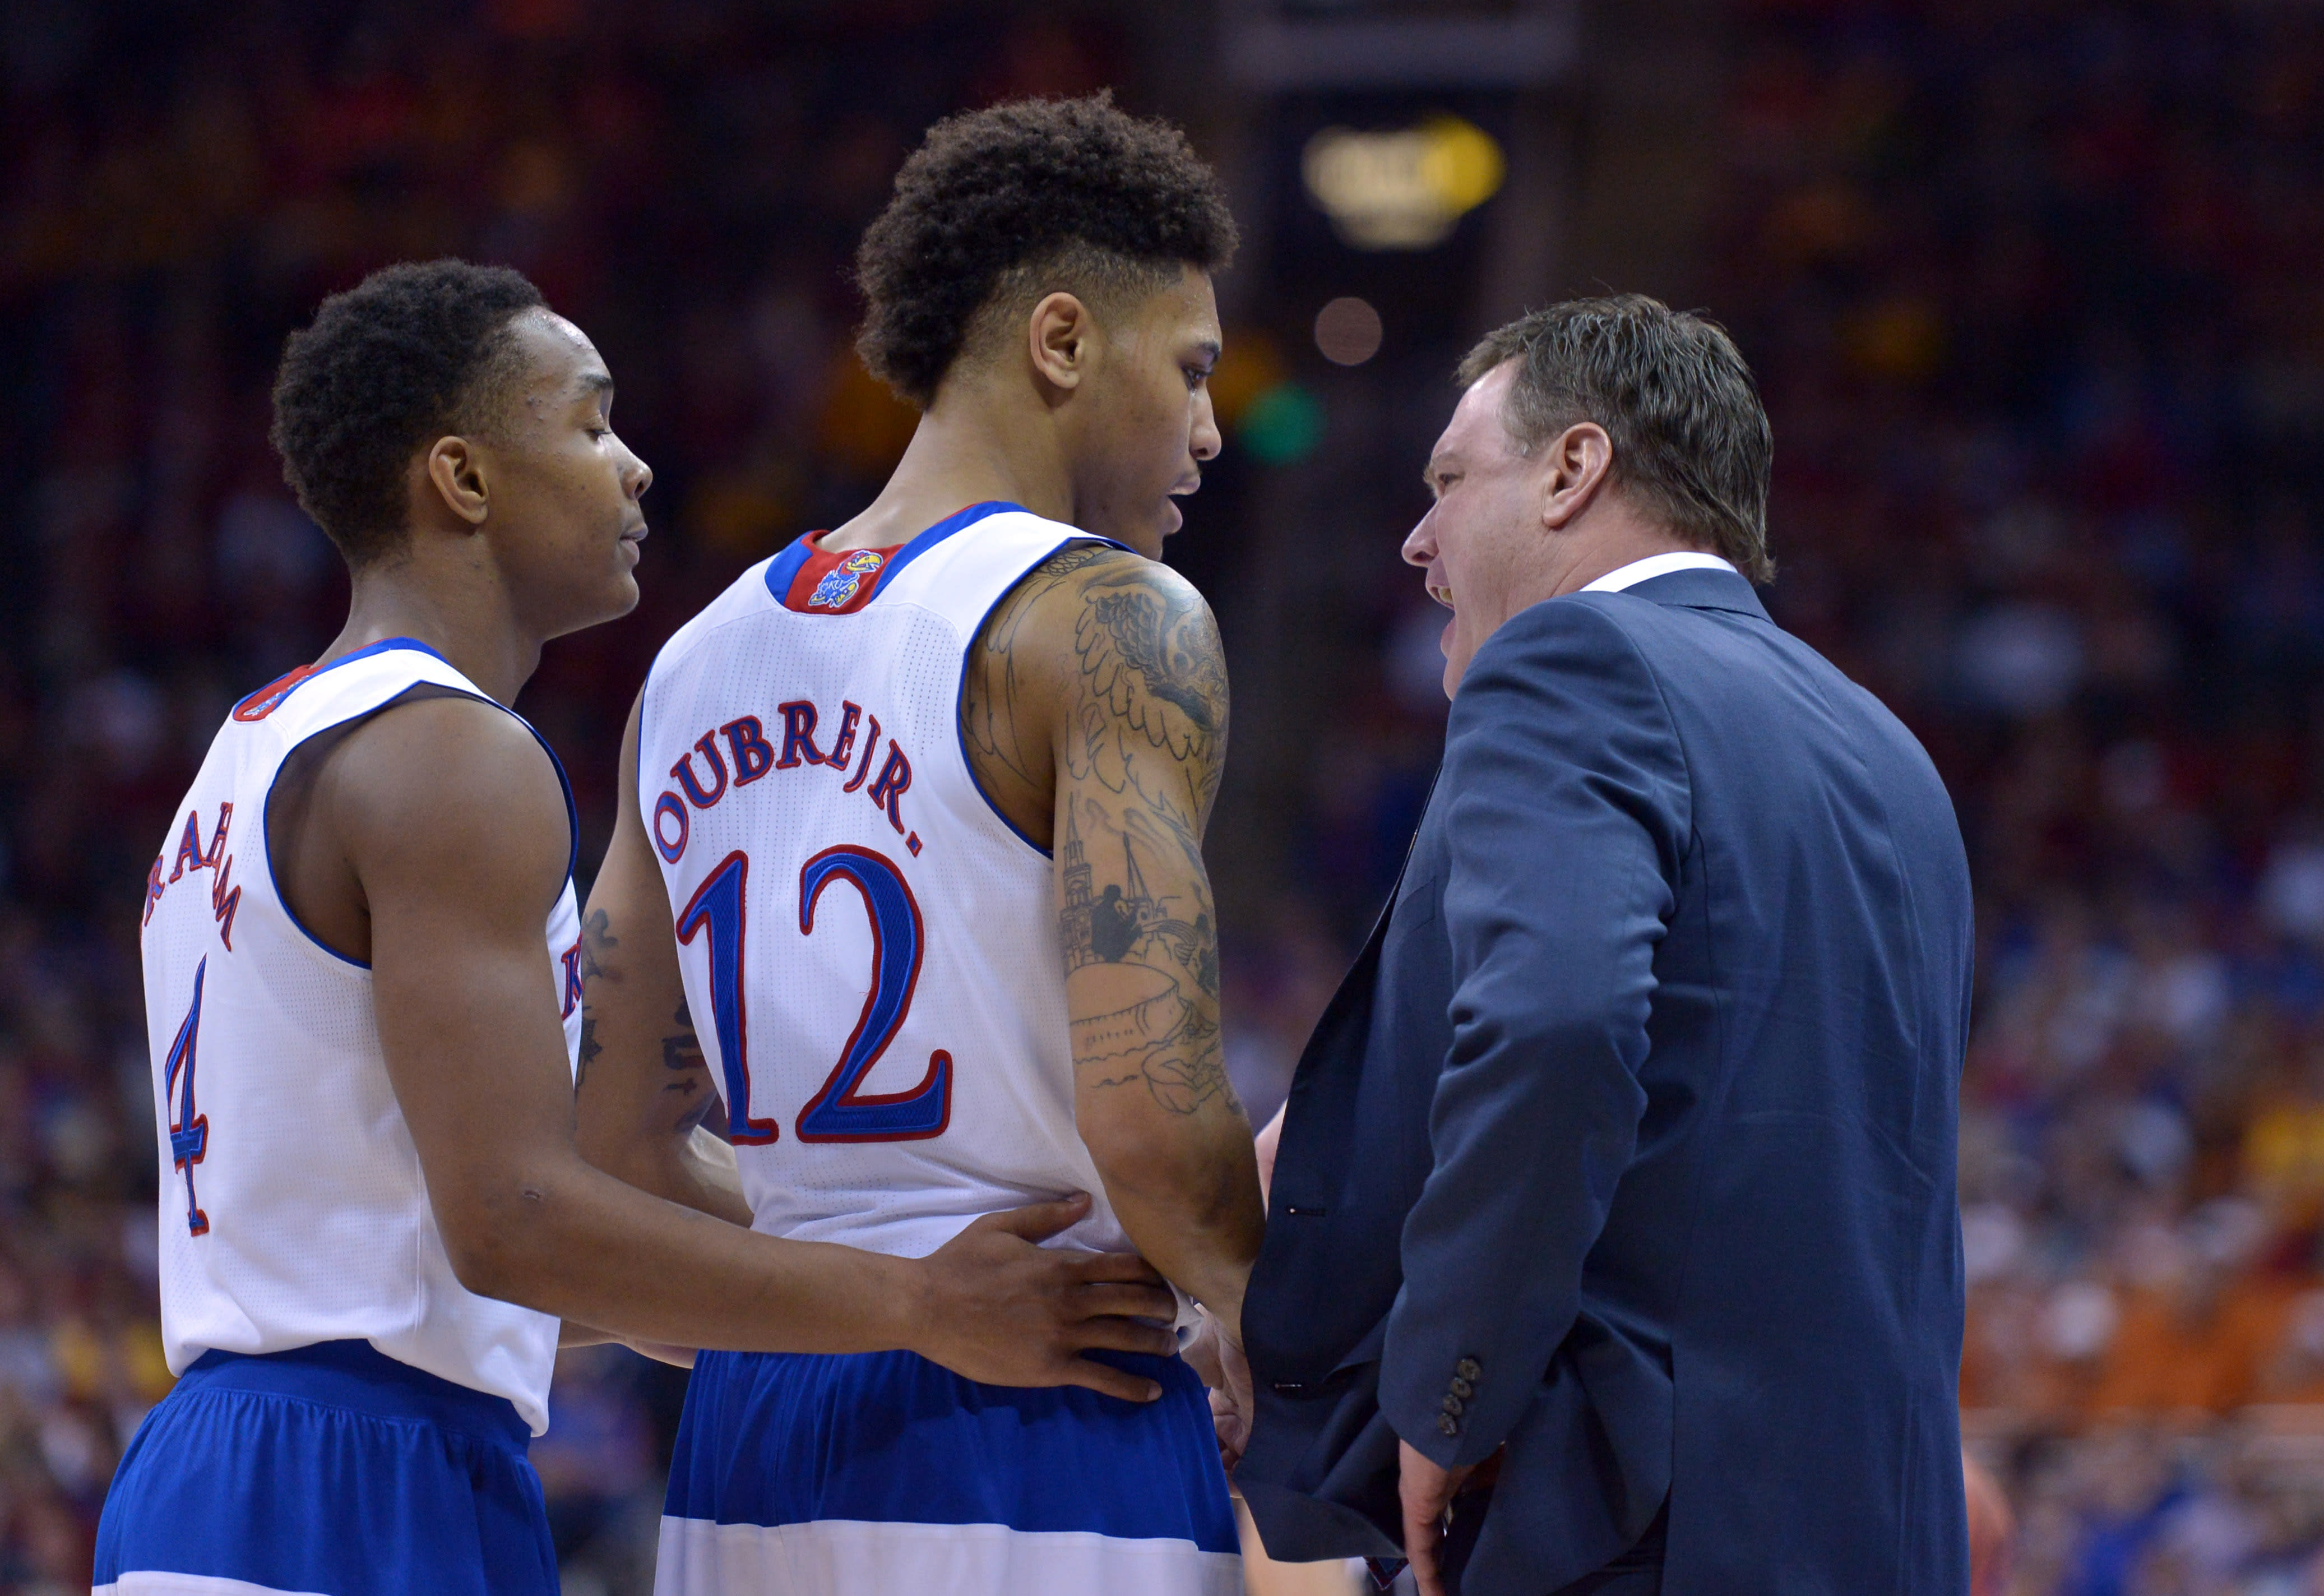 Mar 13, 2015; Kansas City, MO, USA; Kansas Jayhawks head coach Bill Self talks with guard Devonte Graham (4) and guard Kelly Oubre Jr. (12) in a time out of the game against the Baylor Bears during the semifinals round of the Big 12 Championship at Sprint Center. Kansas won 62-52. Mandatory Credit: Denny Medley-USA TODAY Sports